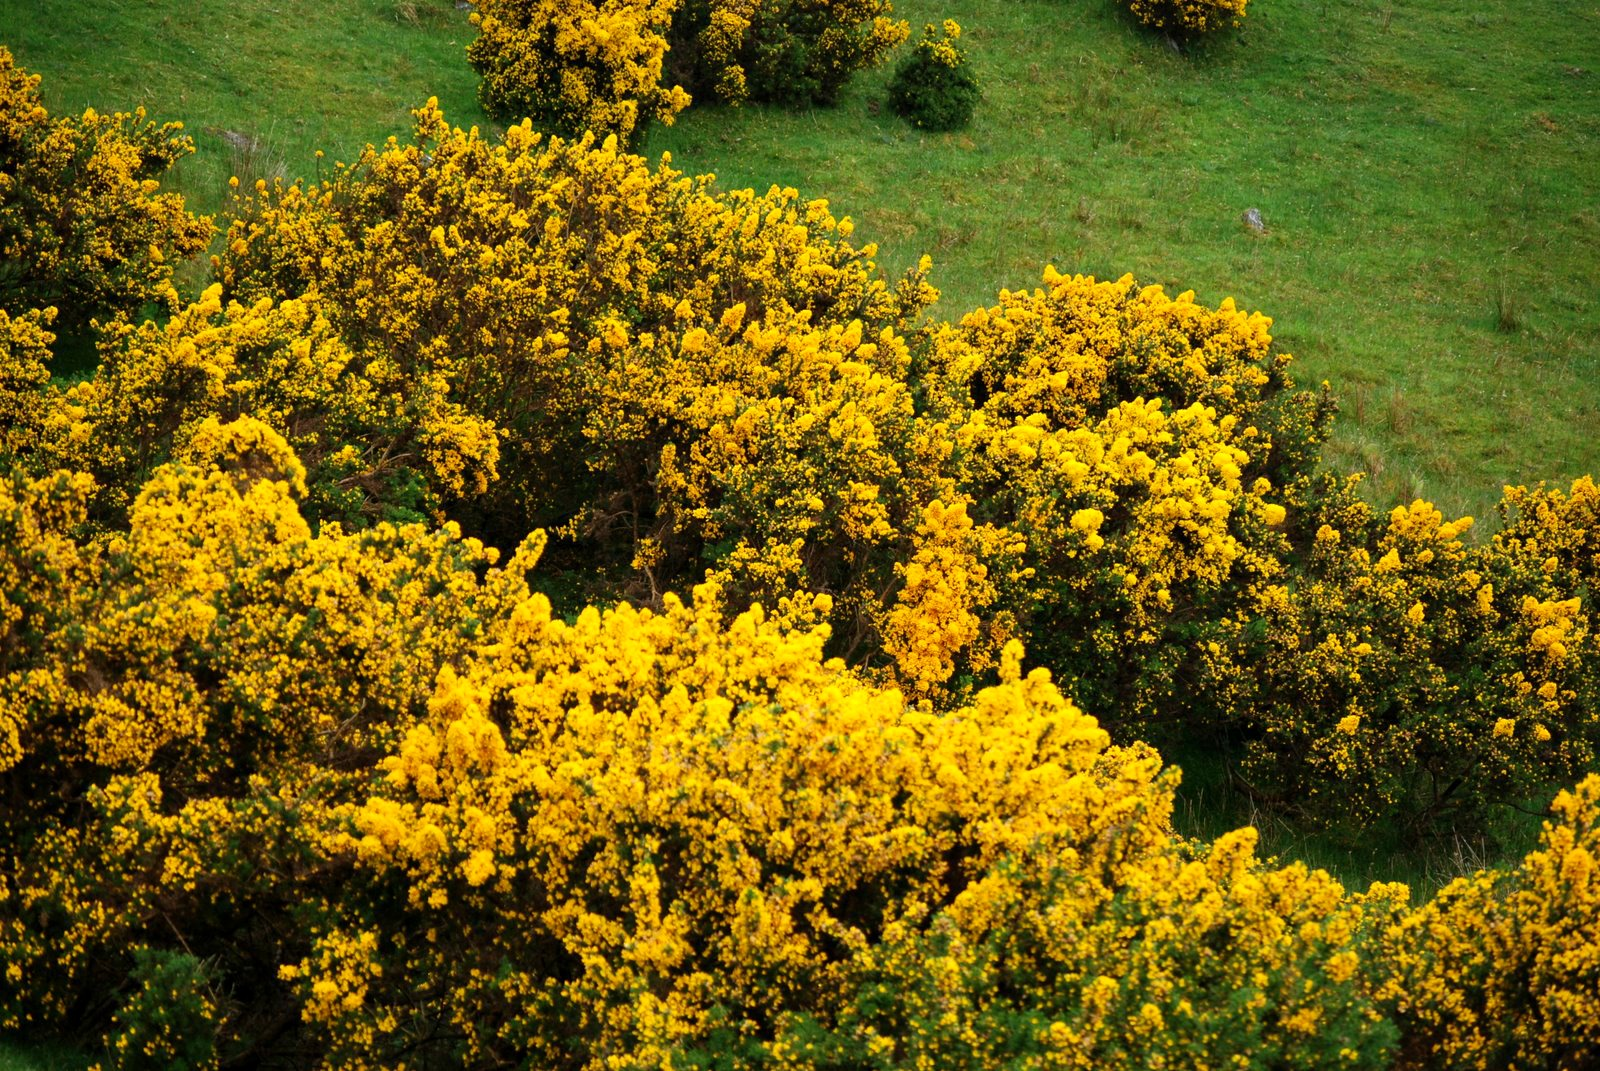 bright-ireland-gorse-bush